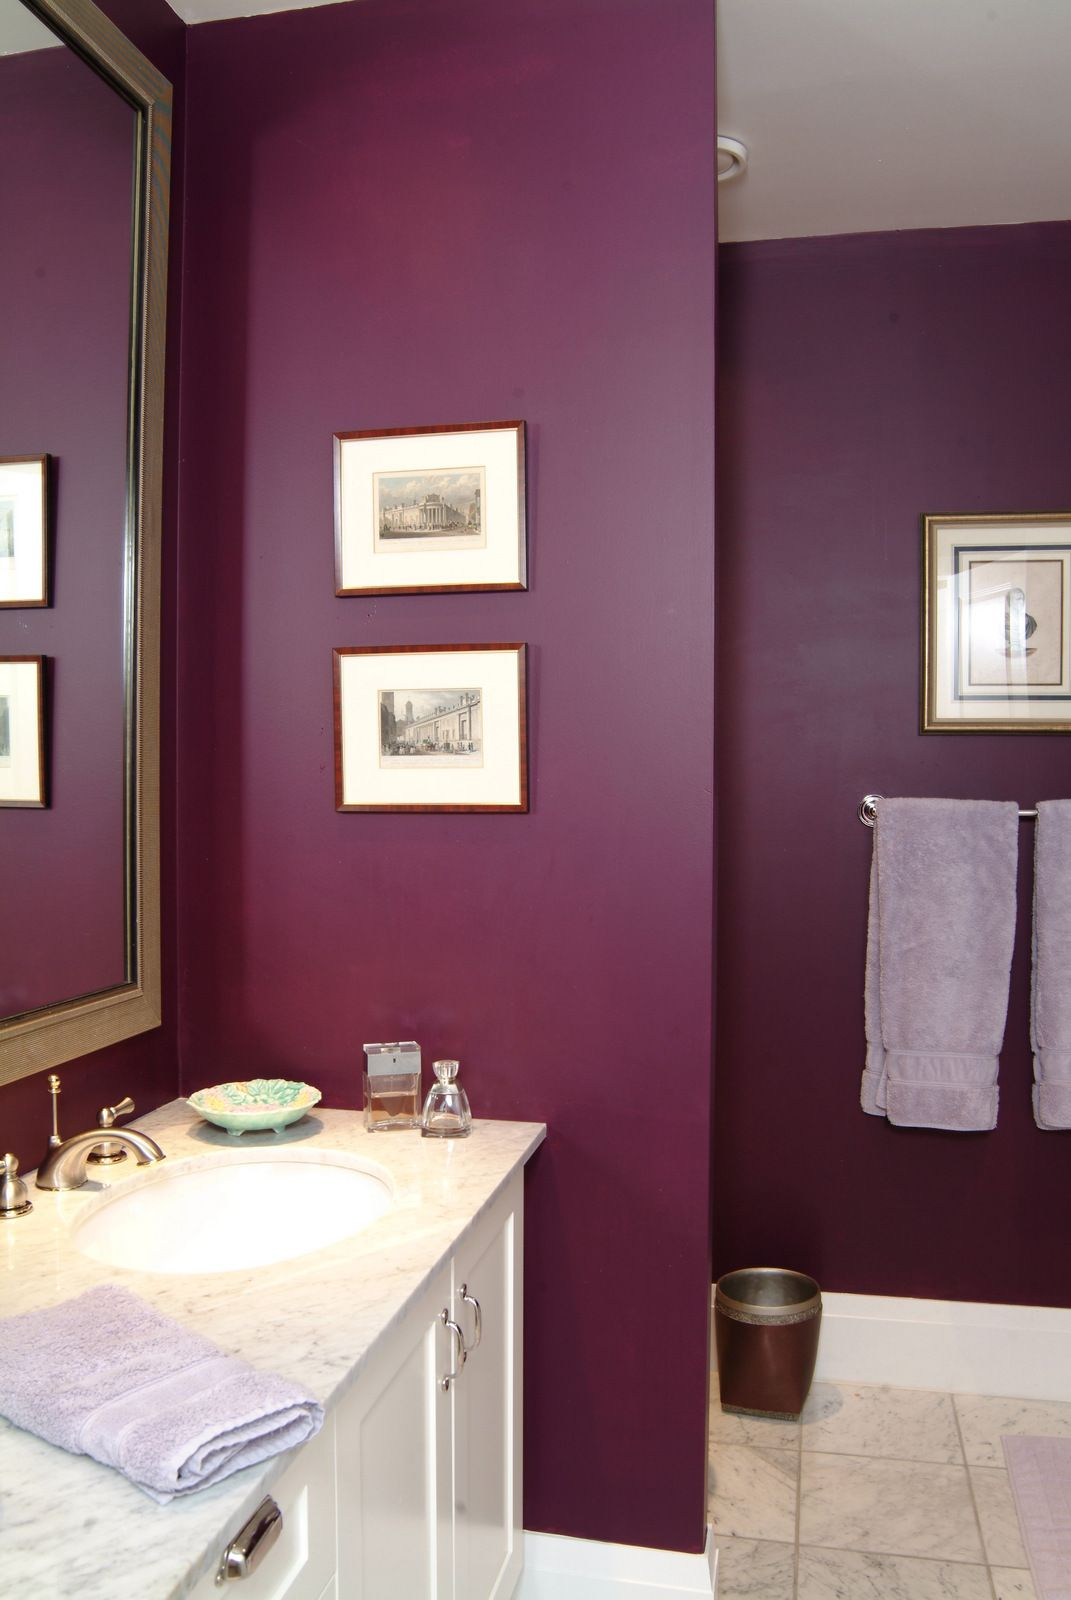 Plum Colored Bedrooms Plum Purple Bathroom From Interior Design Project By Jane Hall